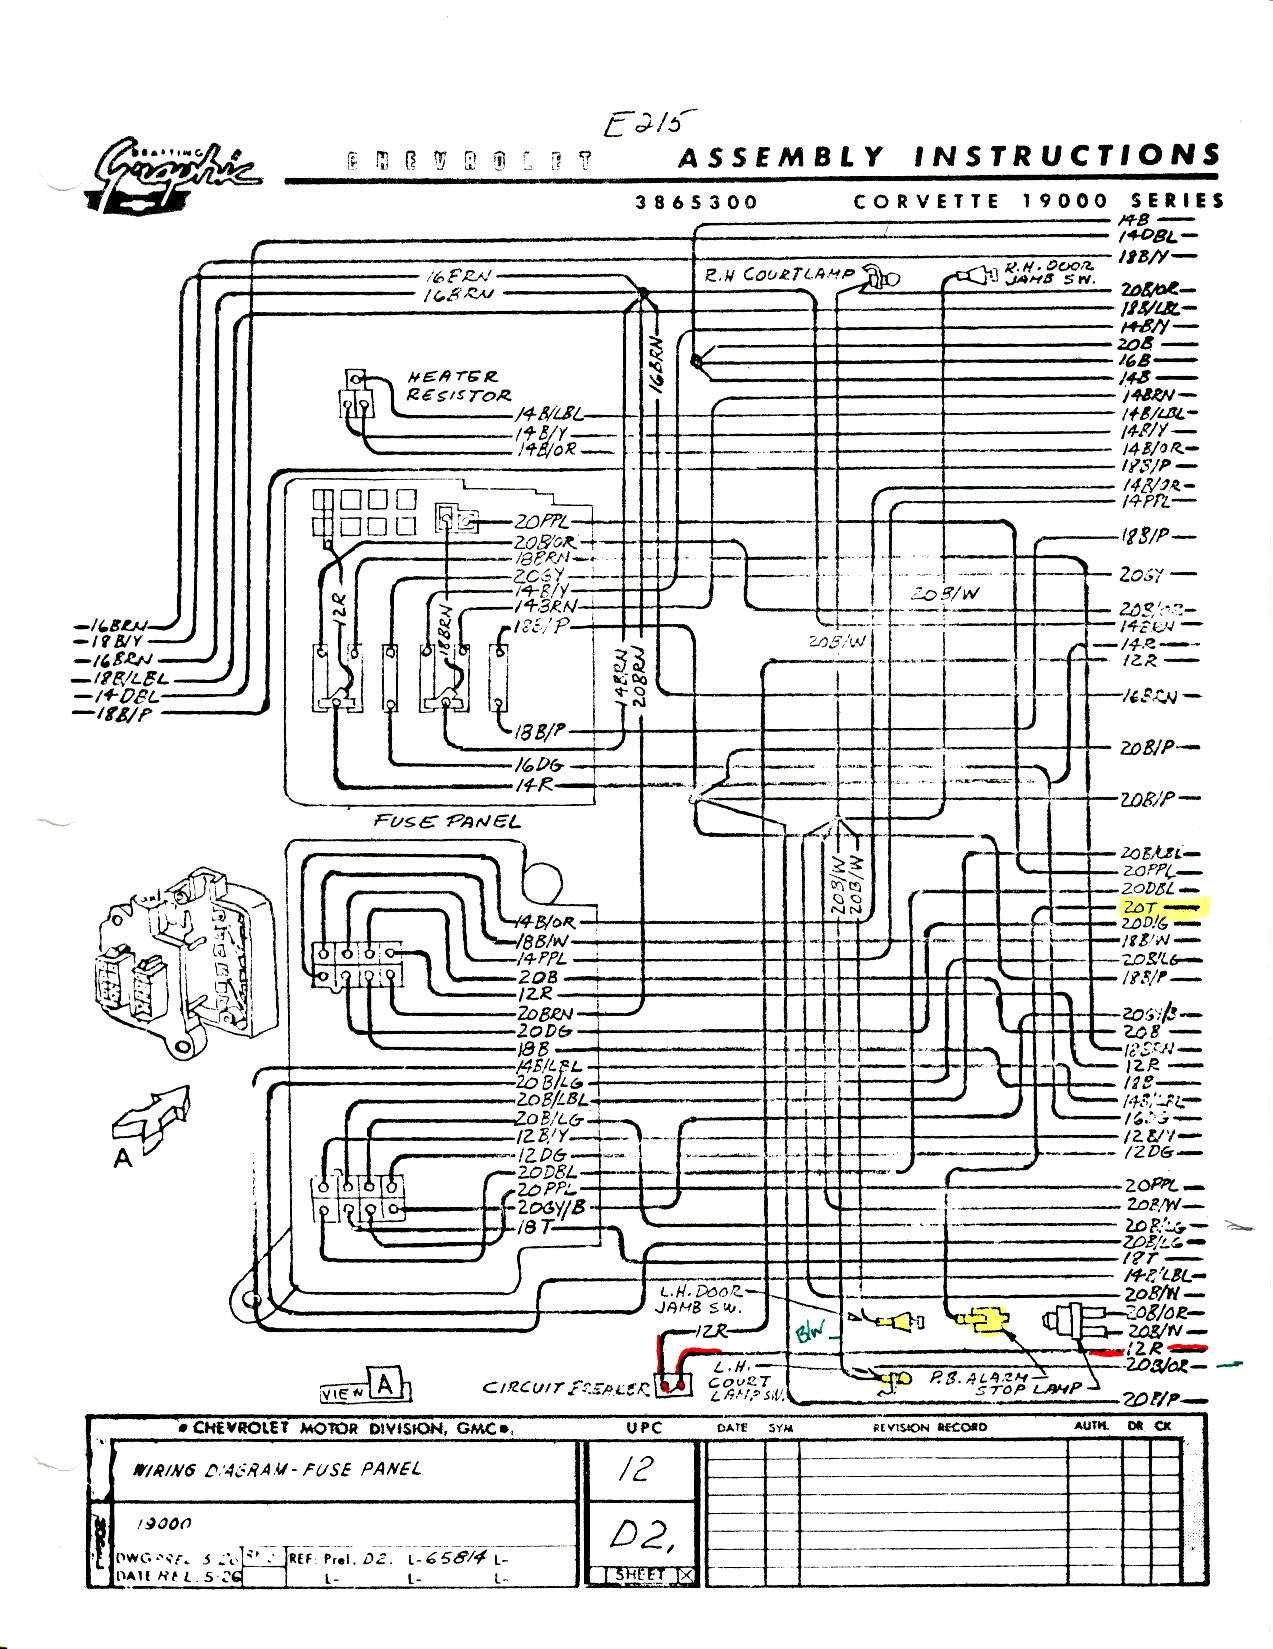 hight resolution of c4 corvette wiring diagram wiring diagram name c4 corvette wiring diagram help